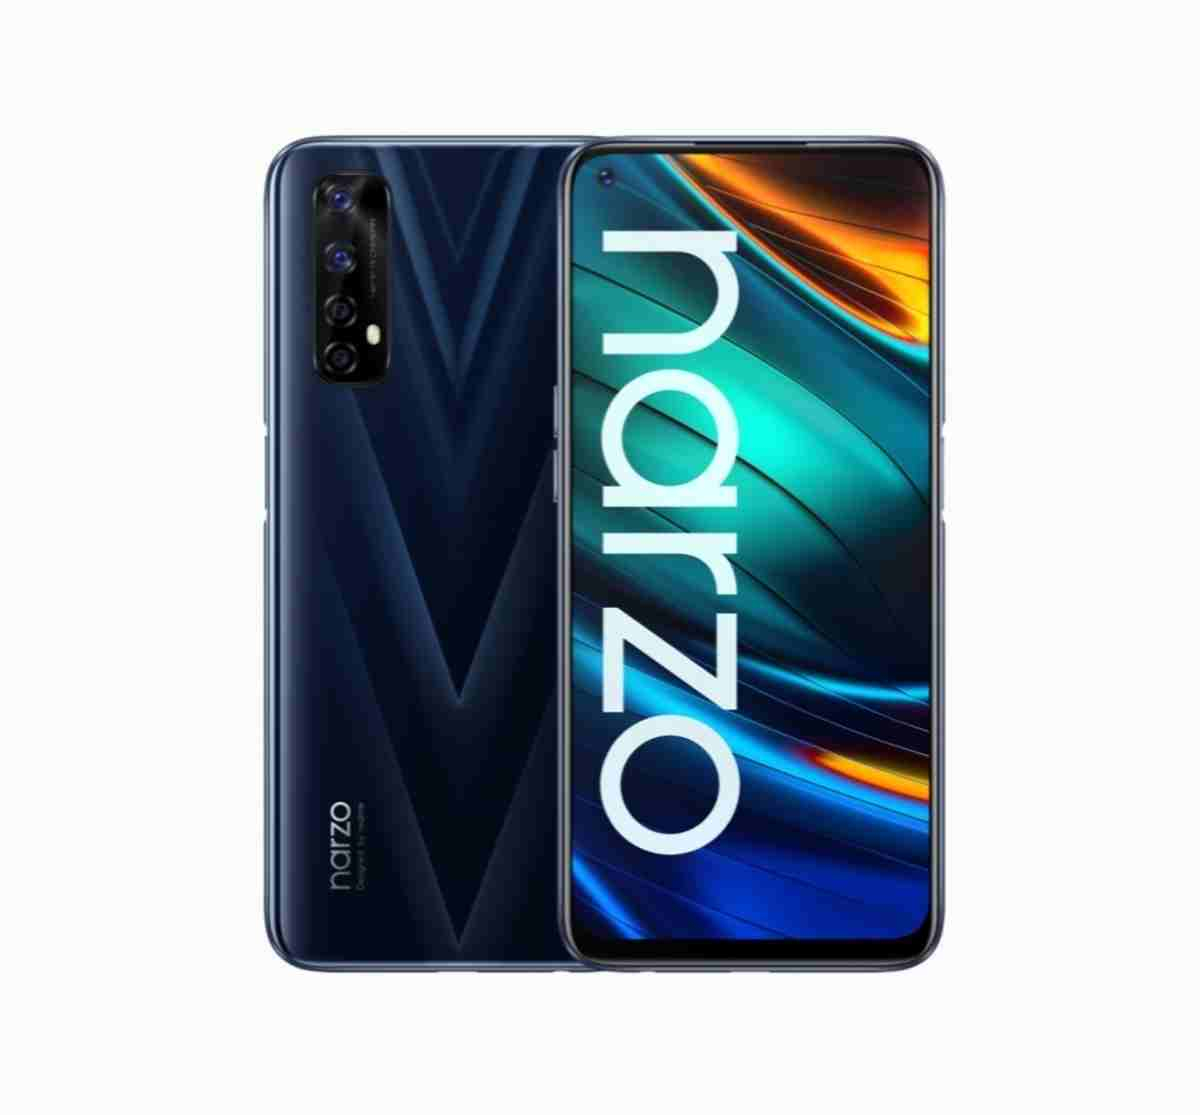 Realme Narzo 20 Pro, Narzo 20 Pro, Realme Narzo 20 Pro price in Nigeria, Narzo 20 Pro price, Realme Narzo 20 Pro specs and price, Narzo 20 Pro specs, how much is Realme Narzo 20 Pro, Realme Narzo 20 Pro price in India, Realme Narzo 20 Pro full specification